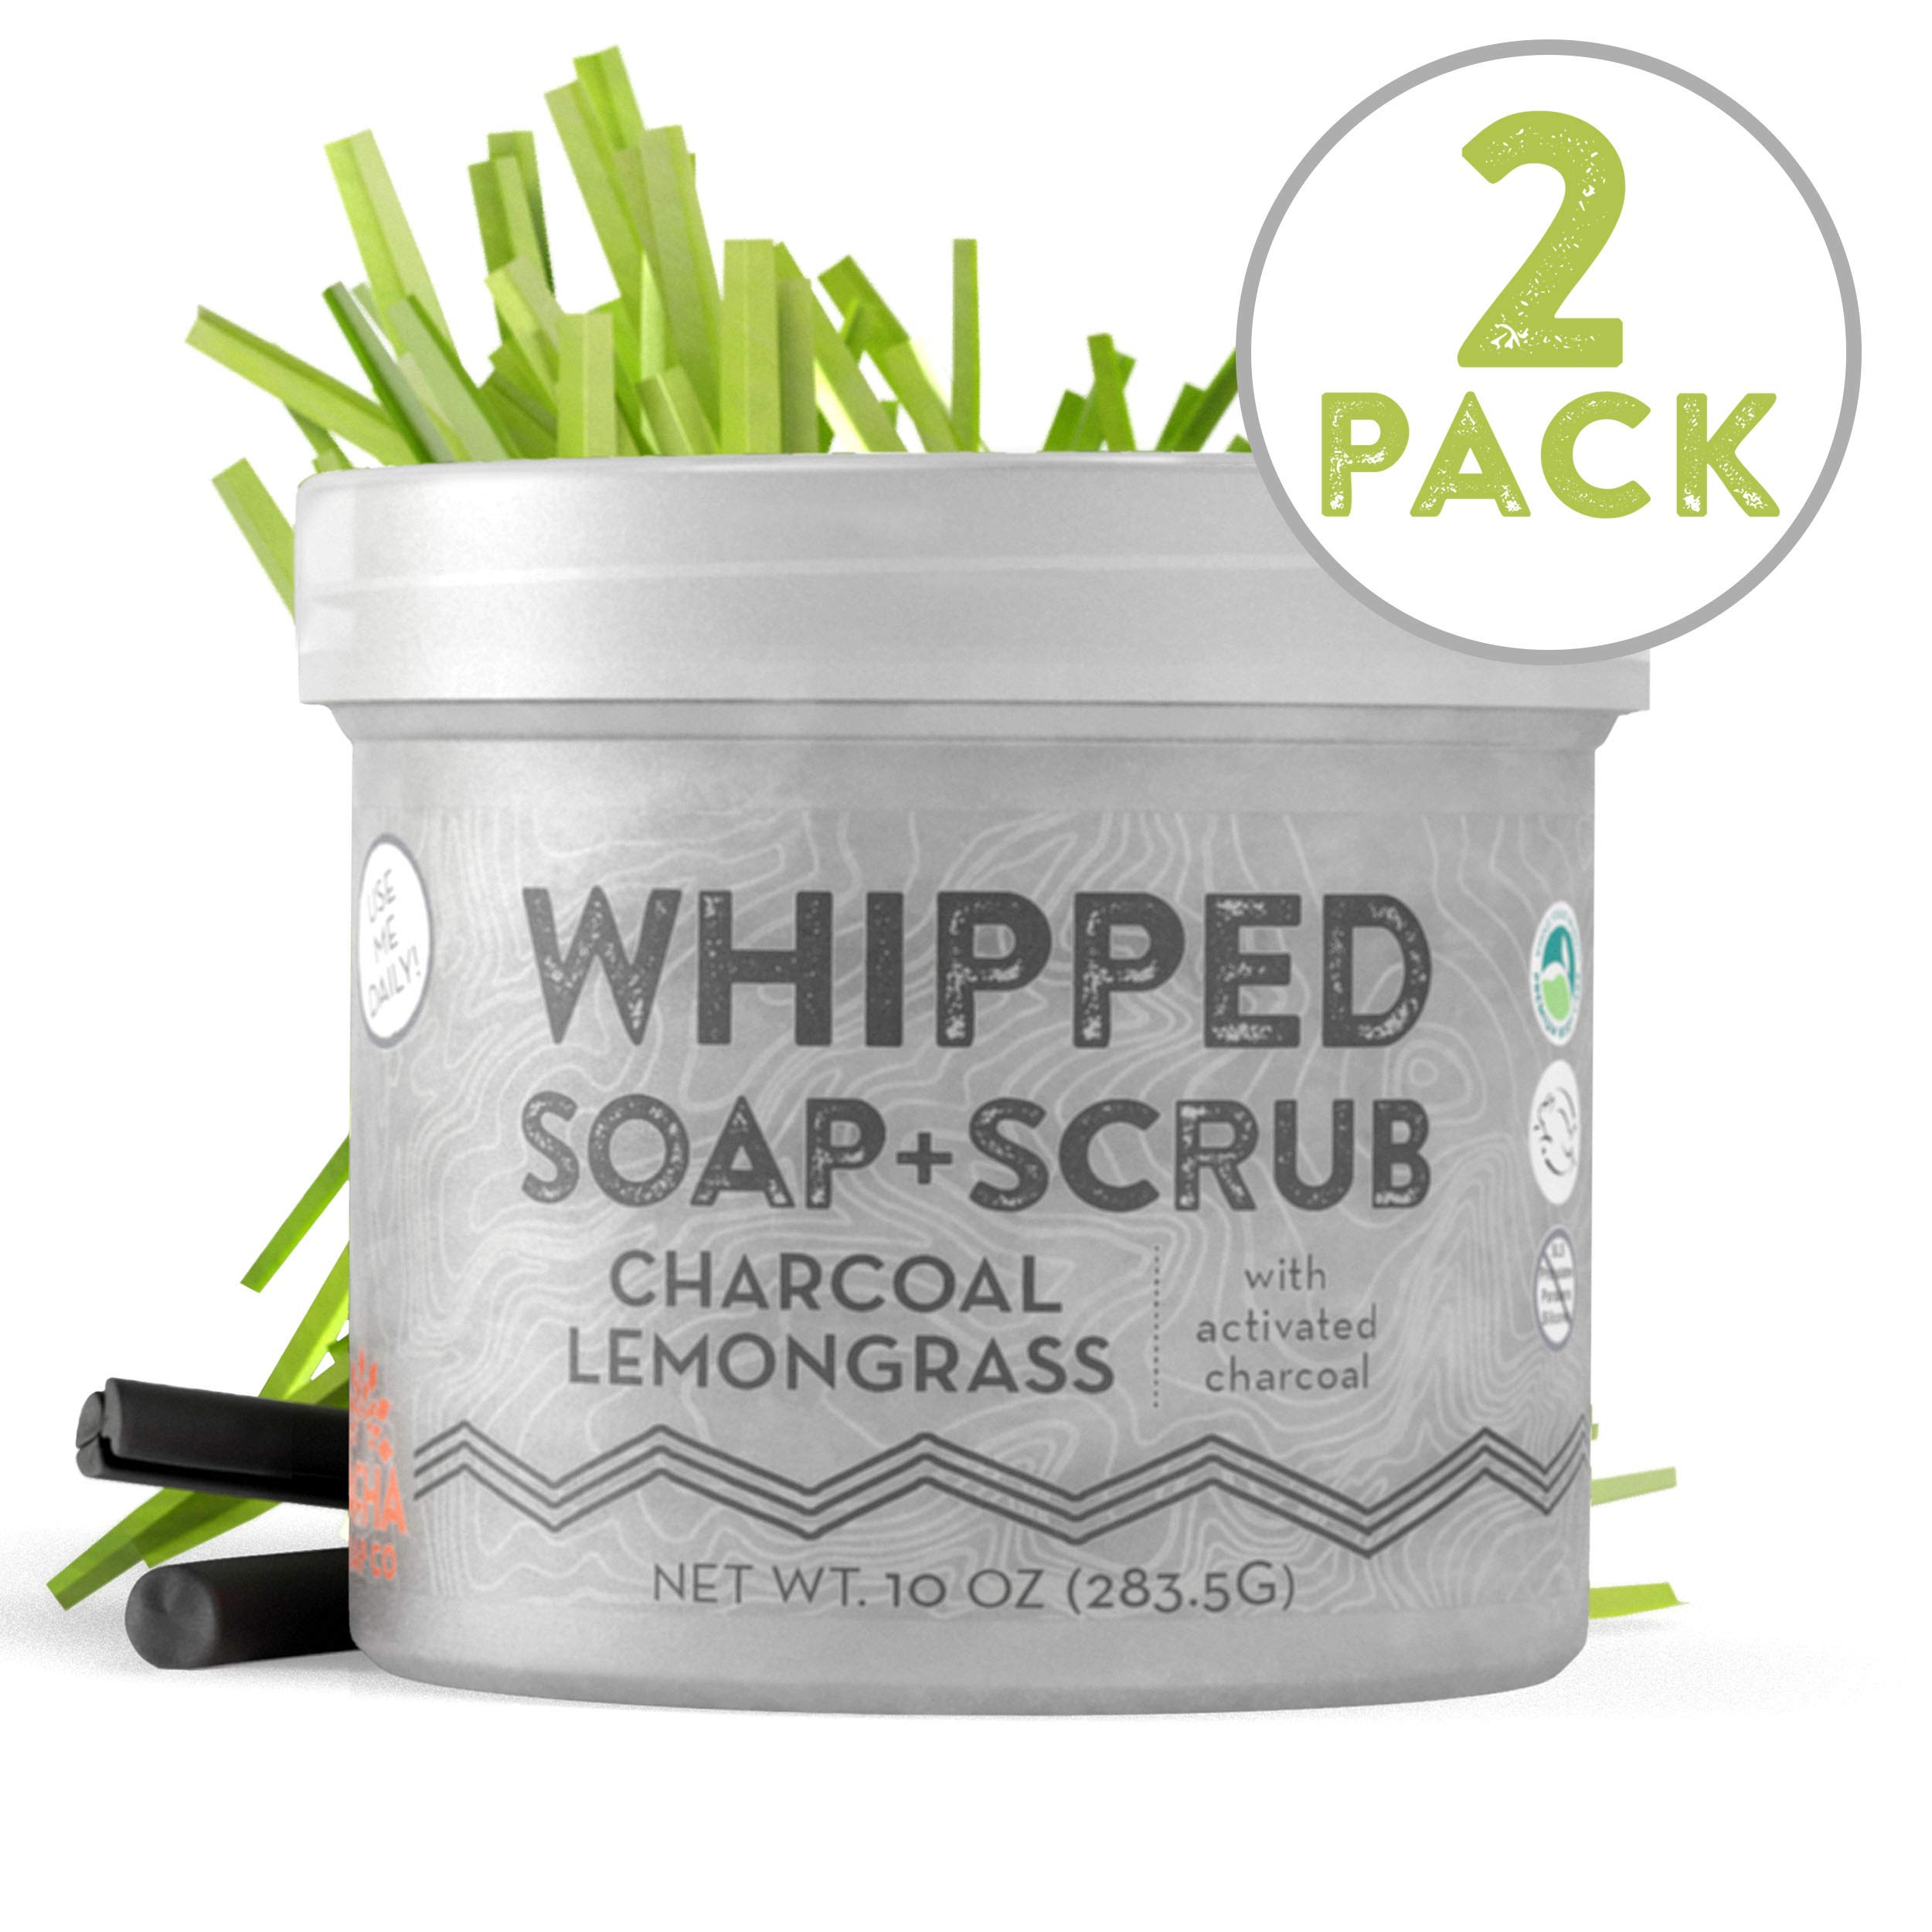 Whipped Soap + Scrub Body Wash - Detoxifying Charcoal and Lemongrass - Luxurious Body Wash and Scrub for an Exfoliating Head to Toe Cleanse by Pacha Soap Co